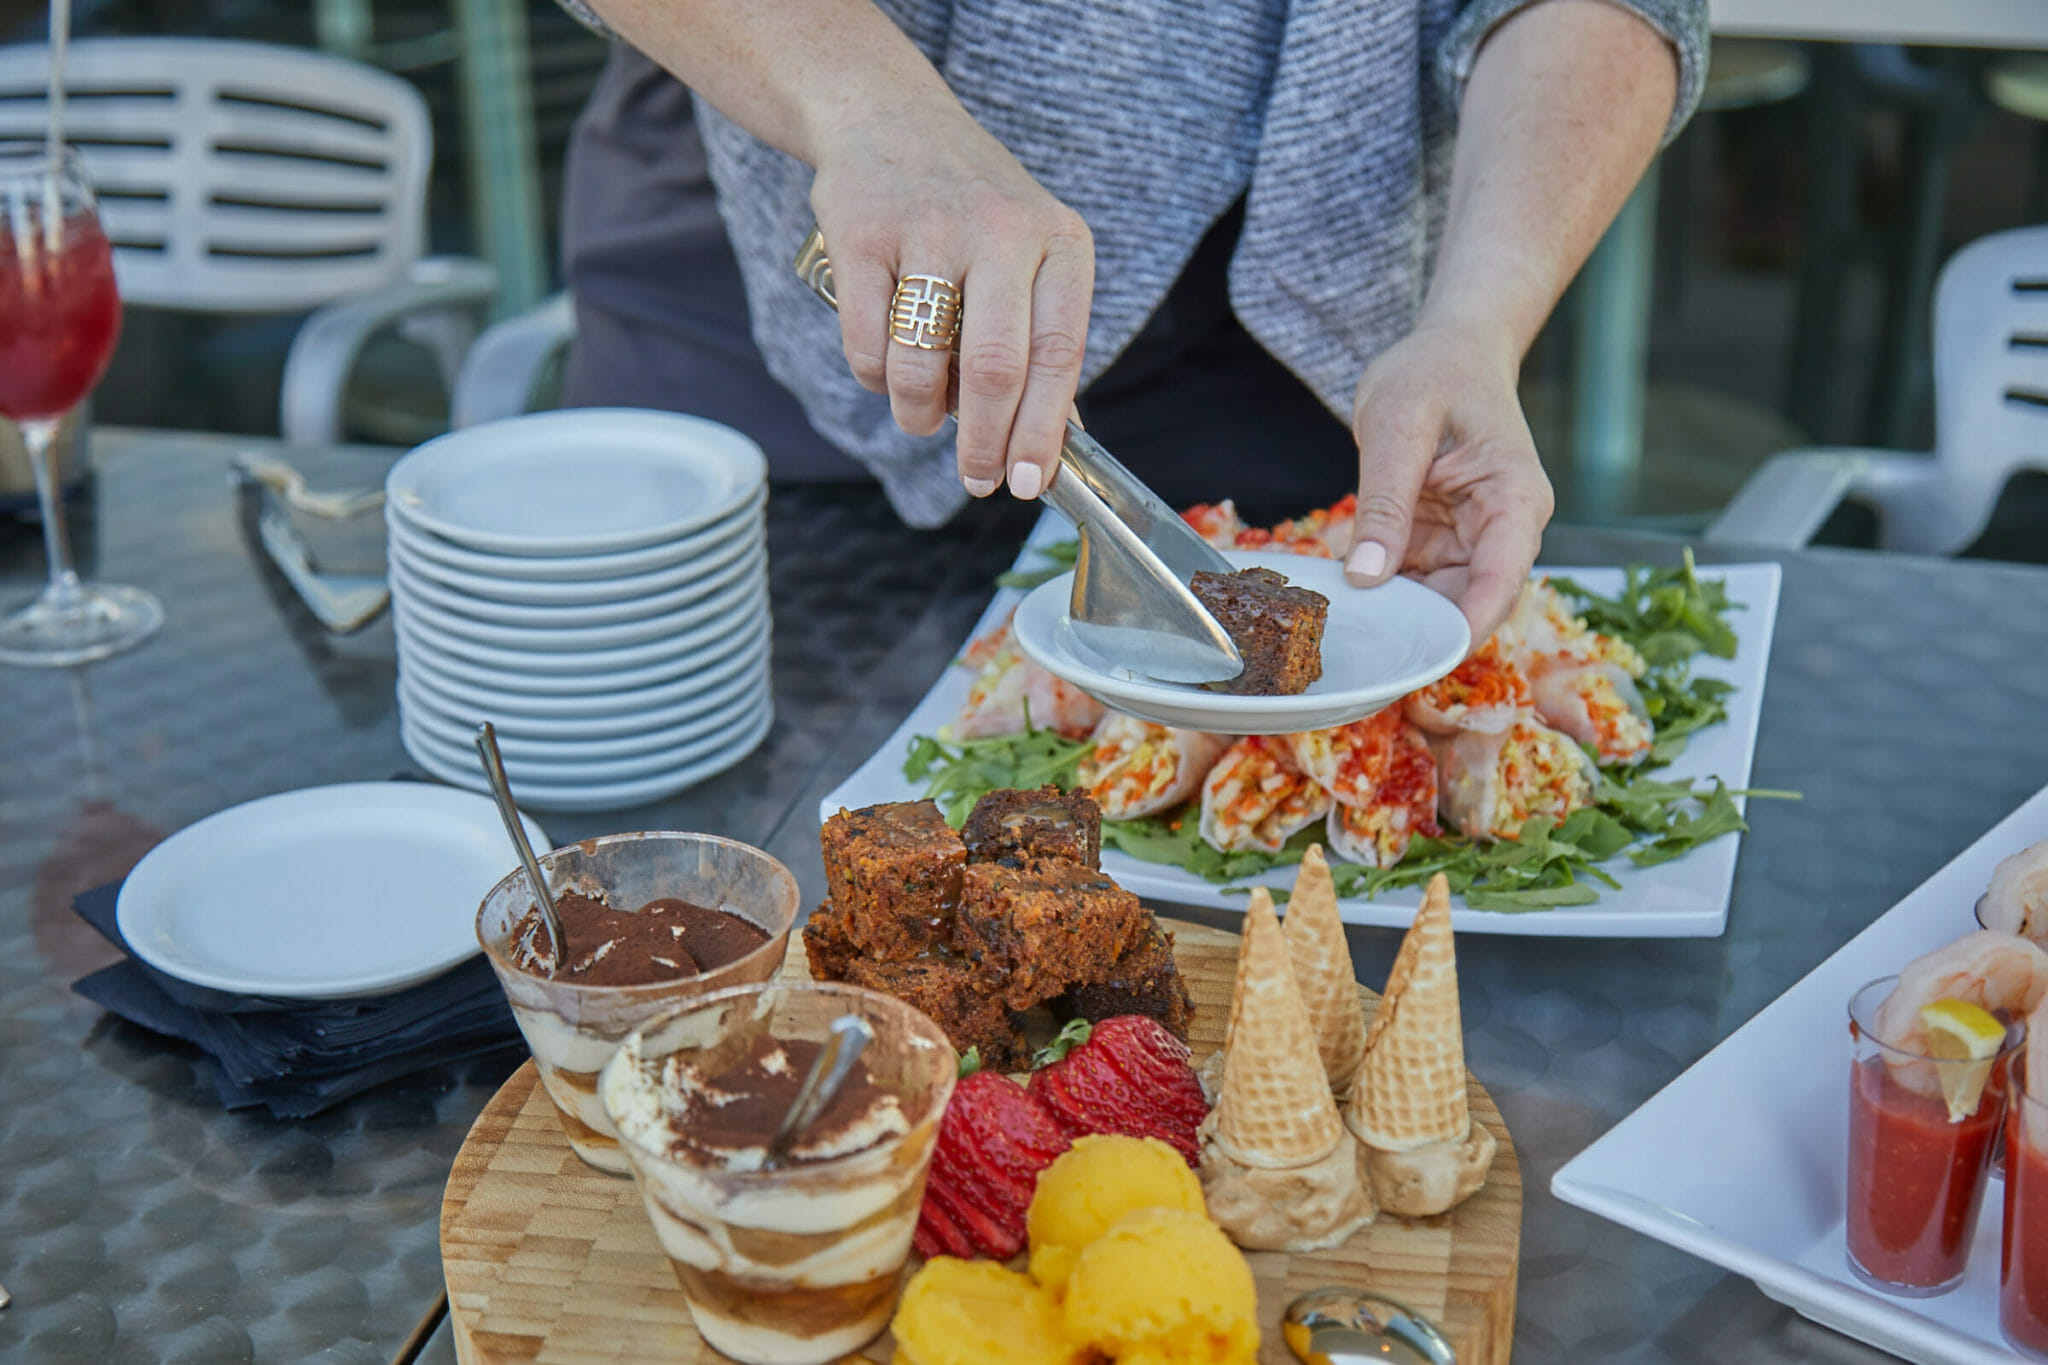 Woman dishing up plate at table of desserts & appetizers from Fare & Square food tour